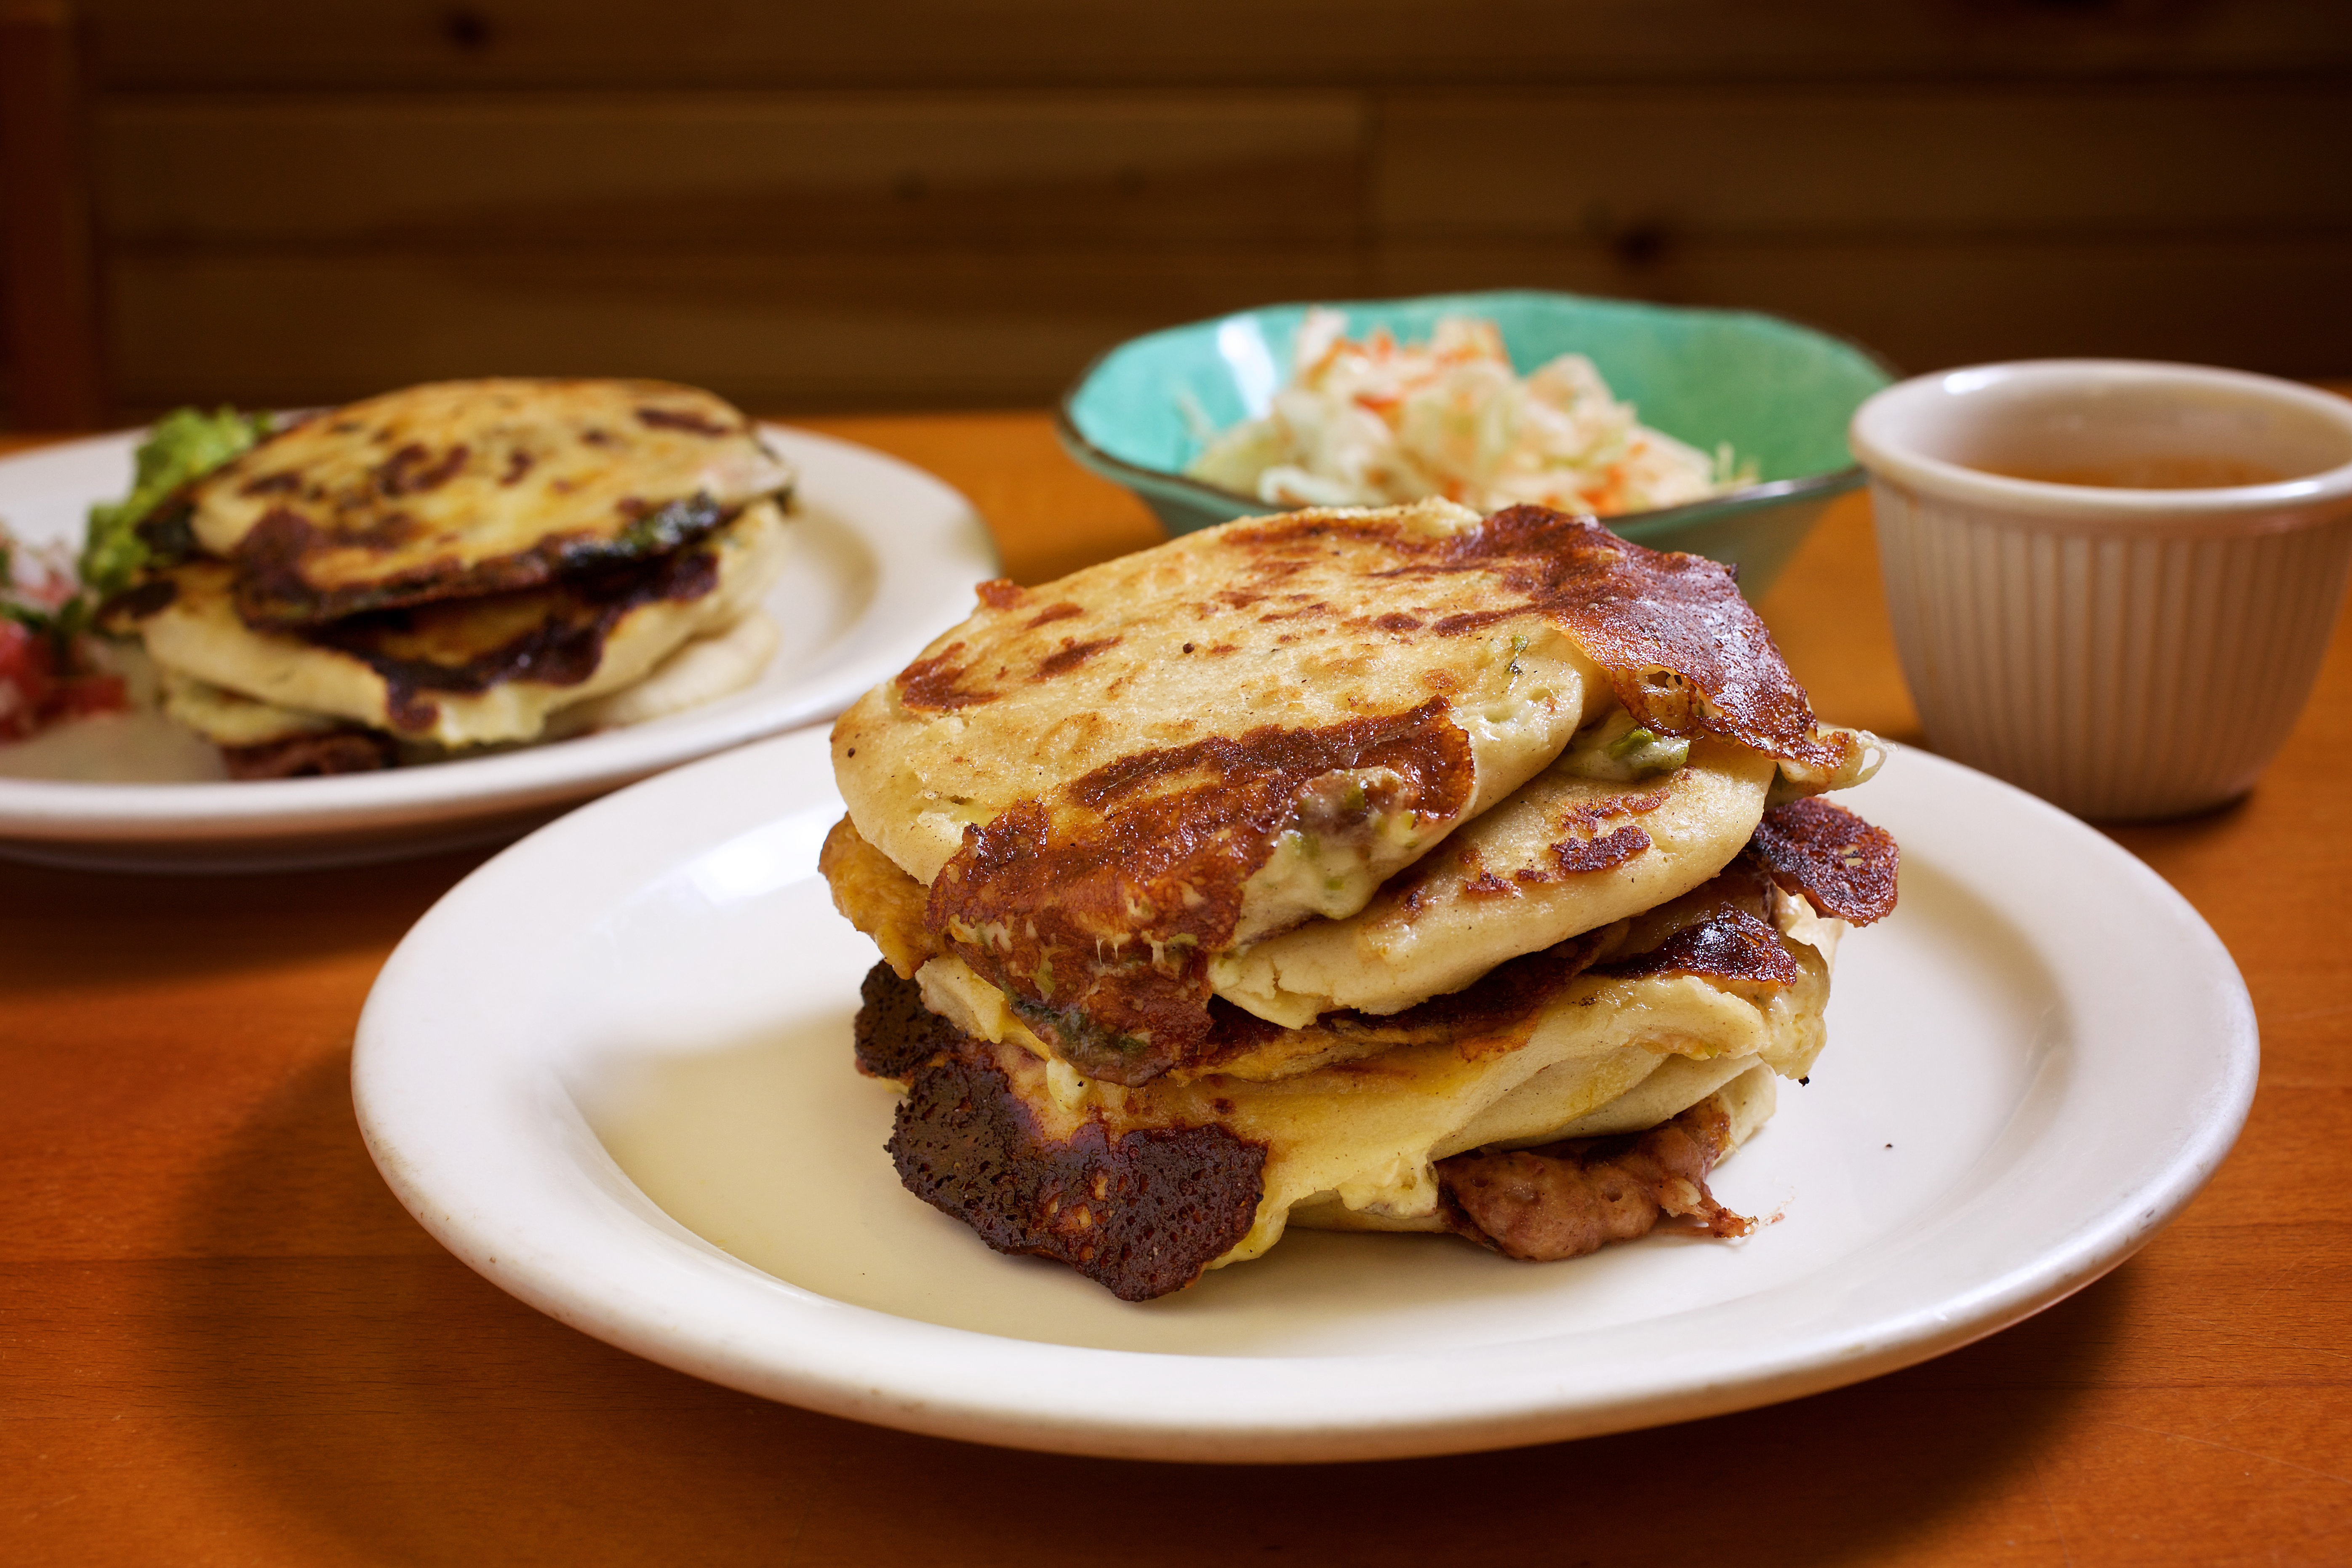 Pupusas overflowing with cheese and beans from Comedor y Pupuseria San Alejo